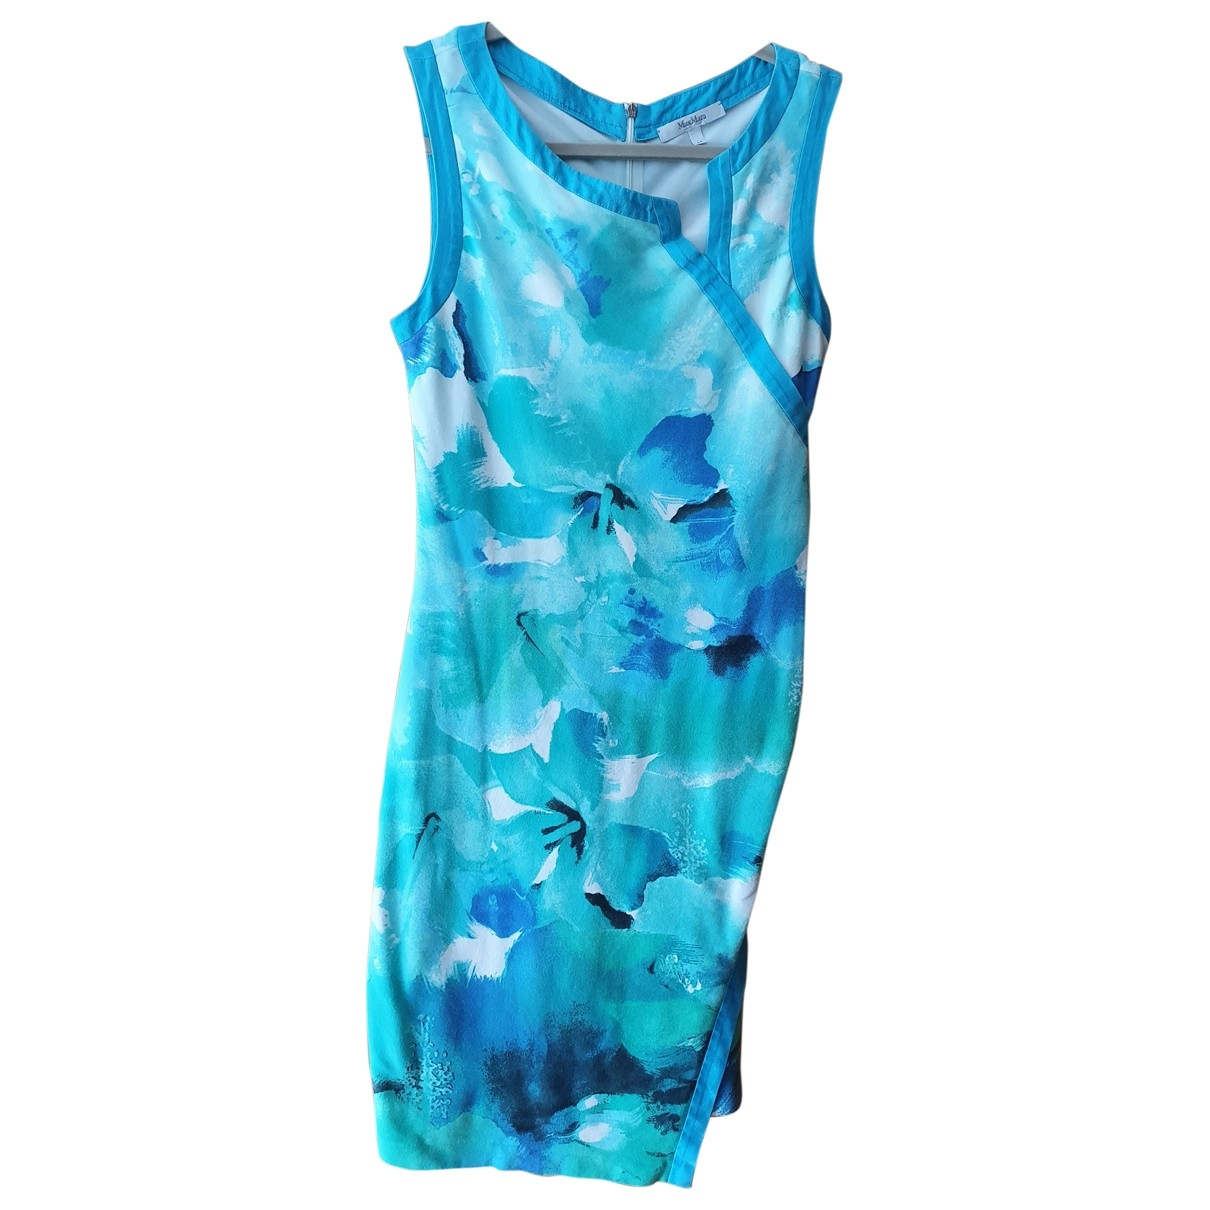 Max Mara \N Turquoise Cotton dress for Women 40 FR